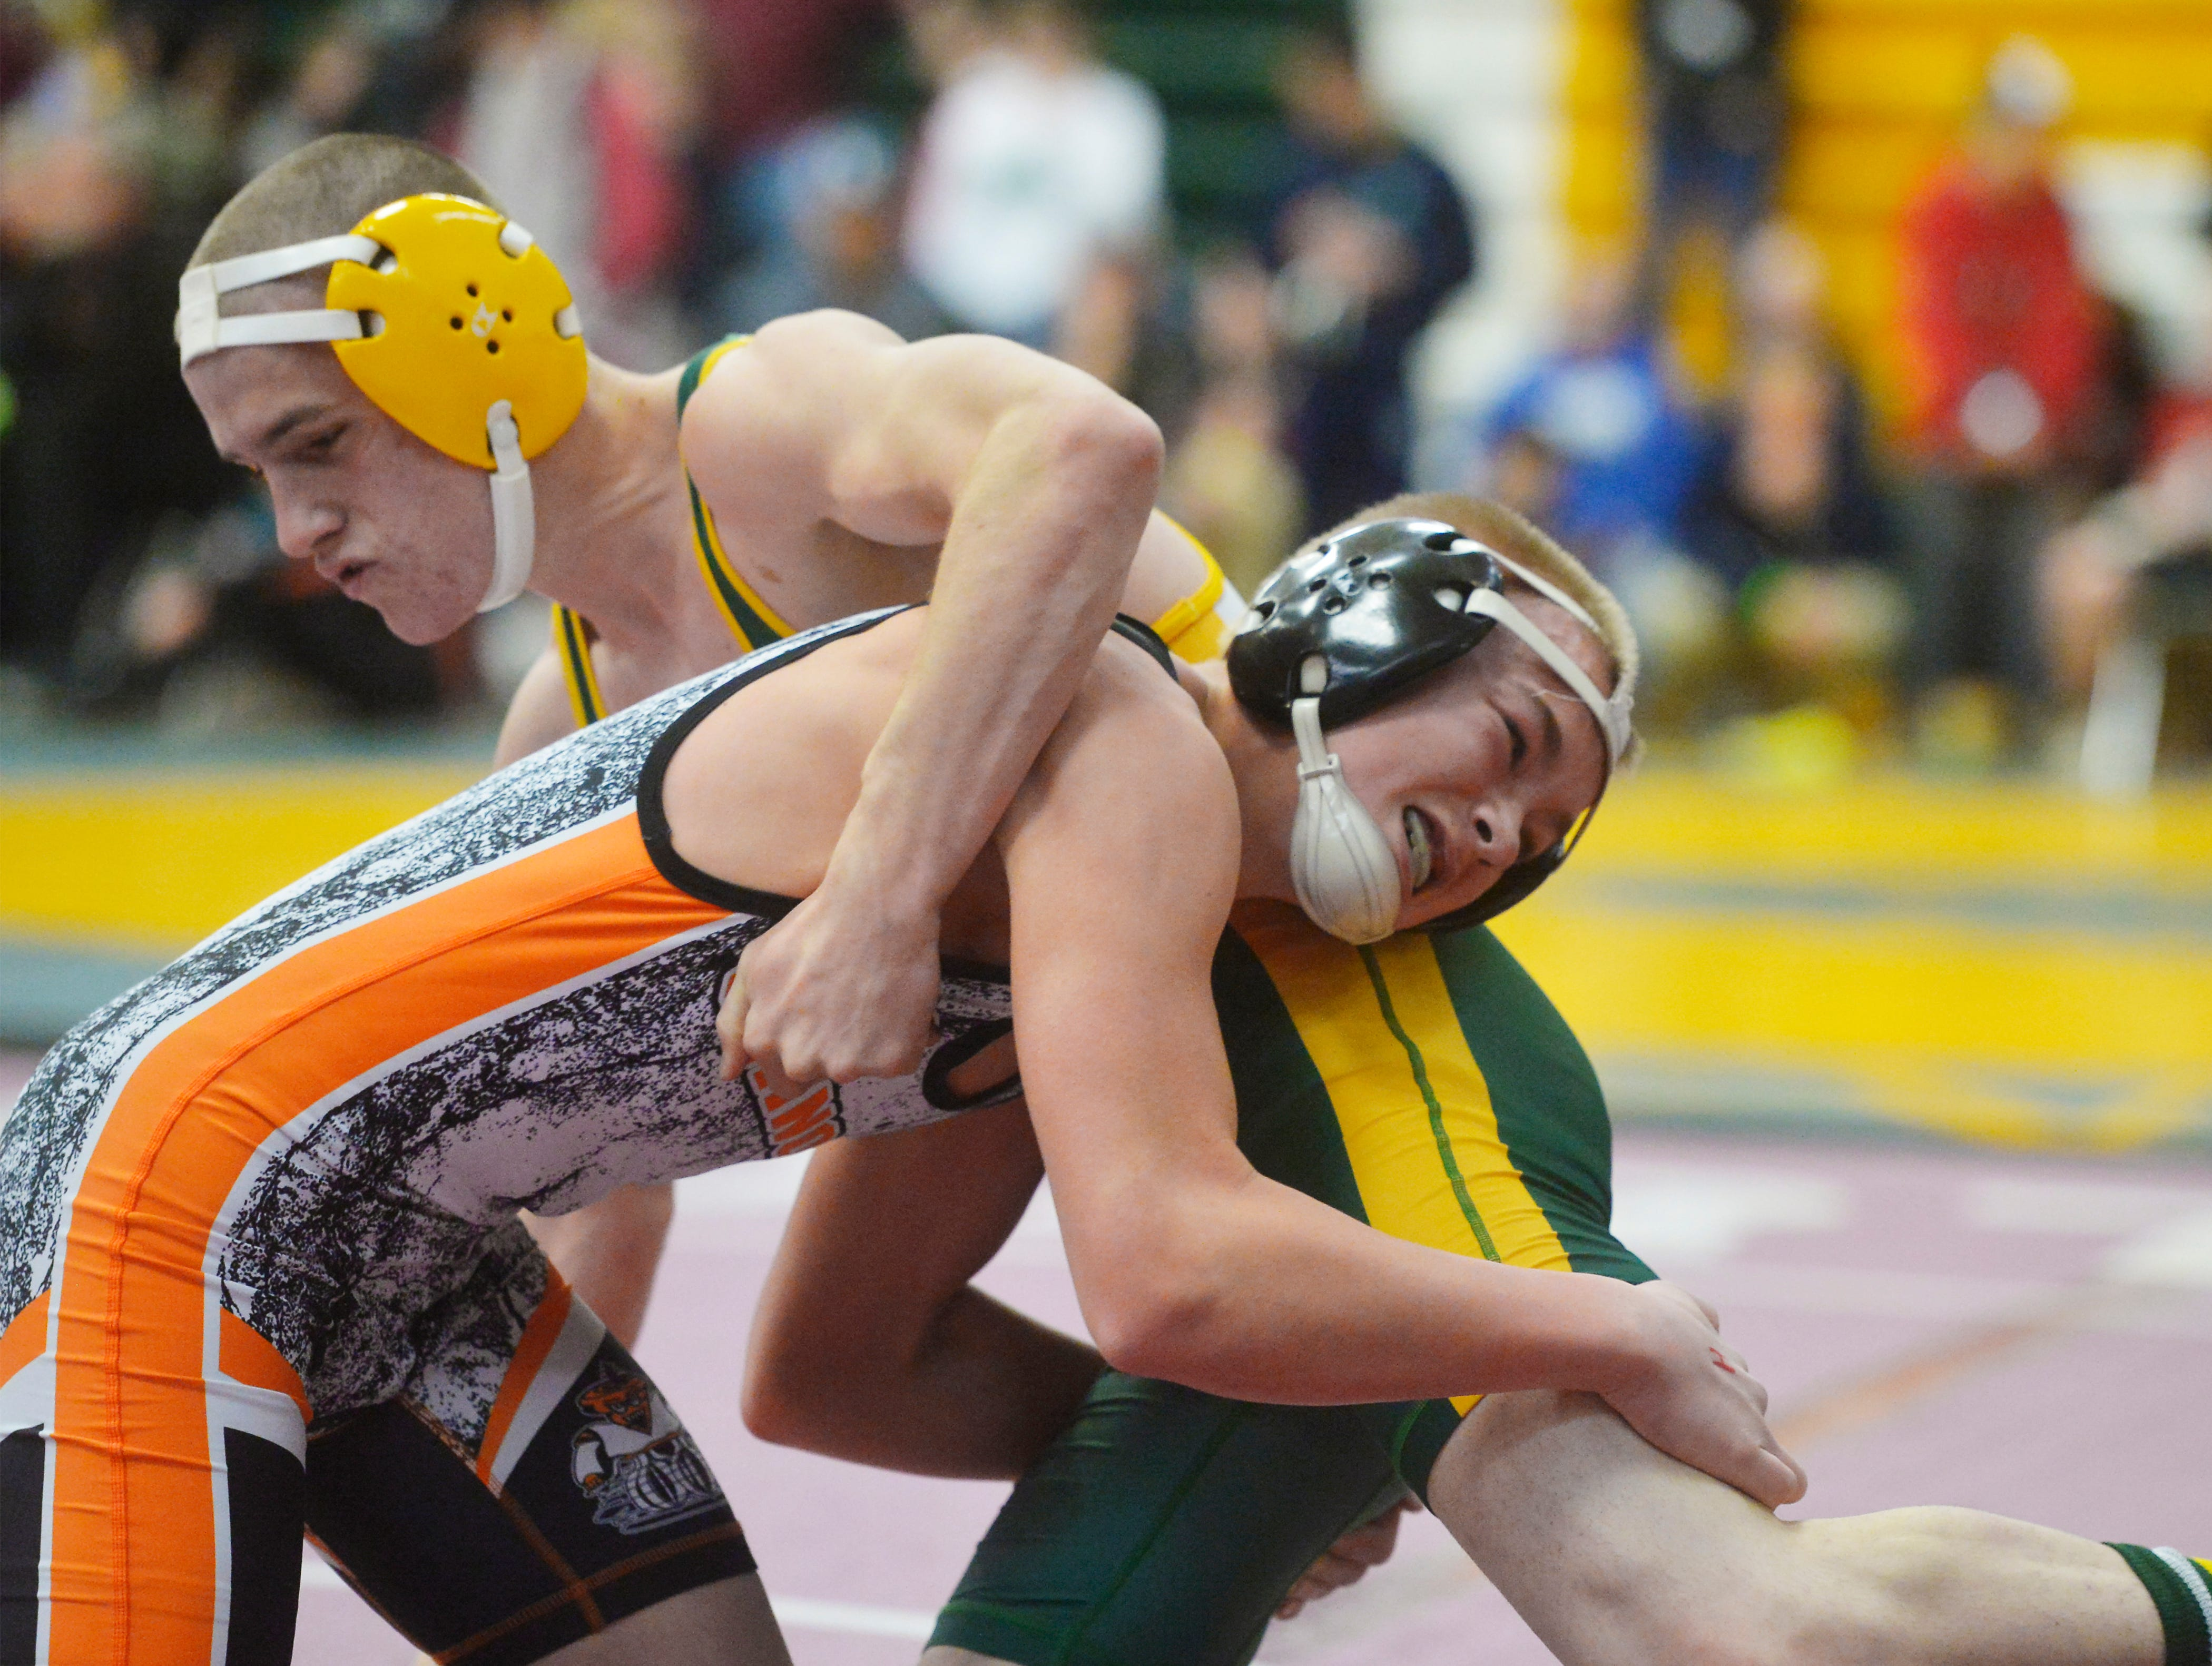 CMR's Logan Sherwood and Chinooks Ethan Liddle battle for position on the mat during the CMR Holiday Classic Wrestling Tournament in the CMR Fieldhouse on Friday.